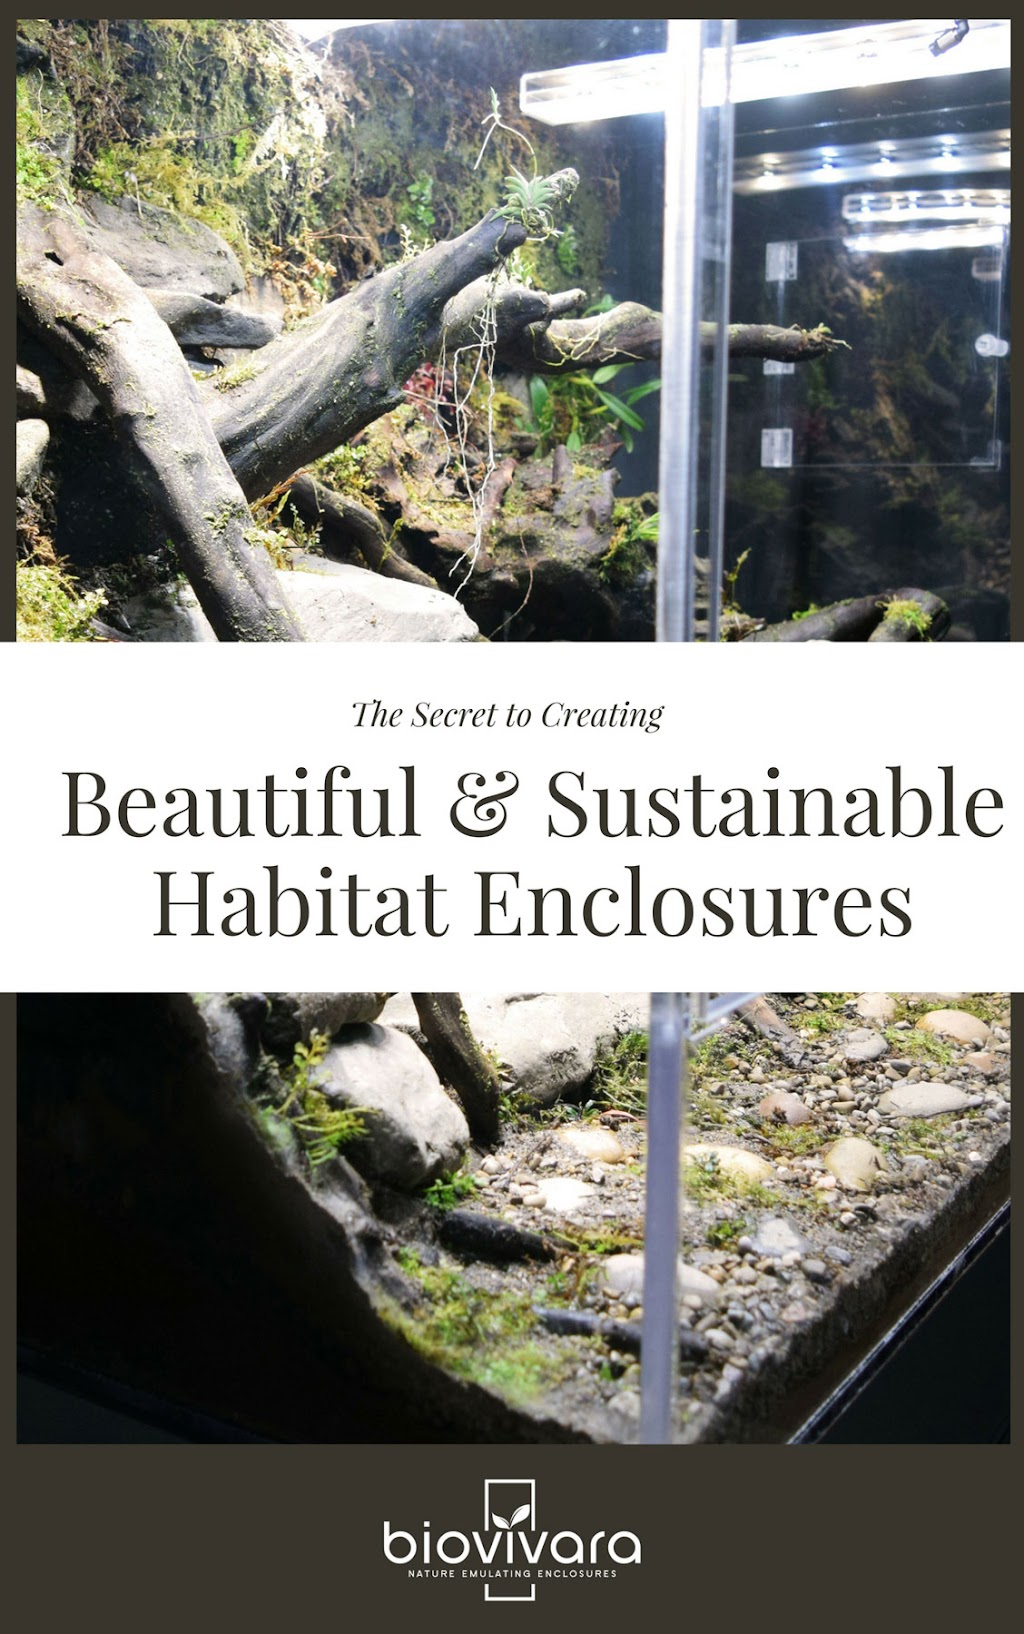 The Secret to Beautiful & Sustainable Habitat Enclosures E-book Cover Page